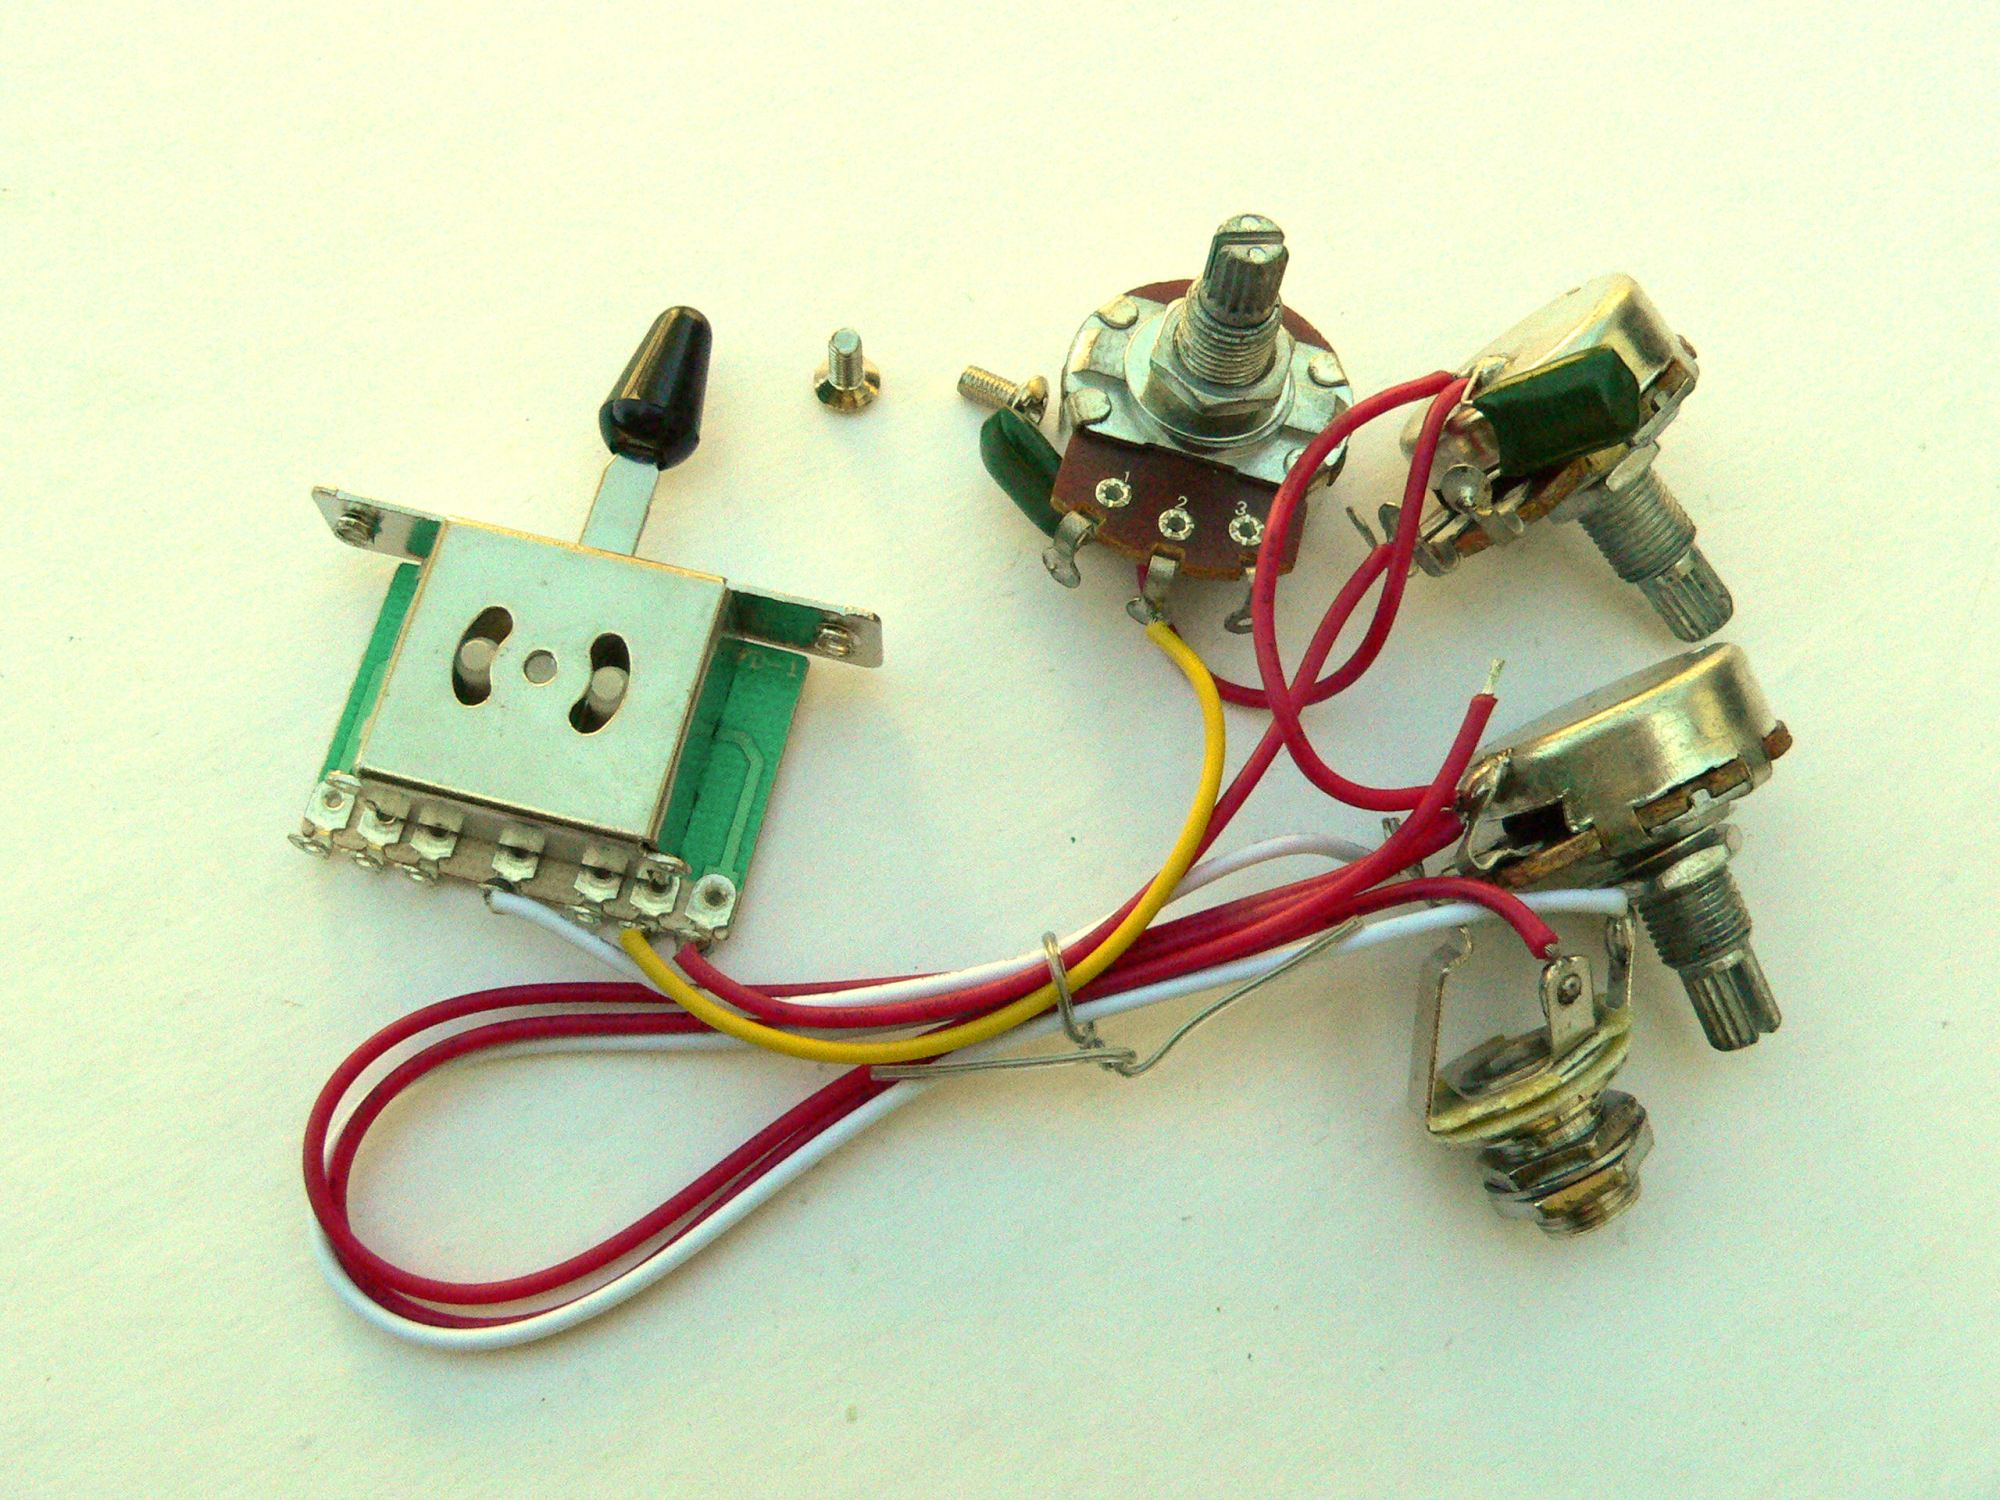 hight resolution of details about 24mm 5 way wiring harness kit for fender stratocaster guitar single coil strat